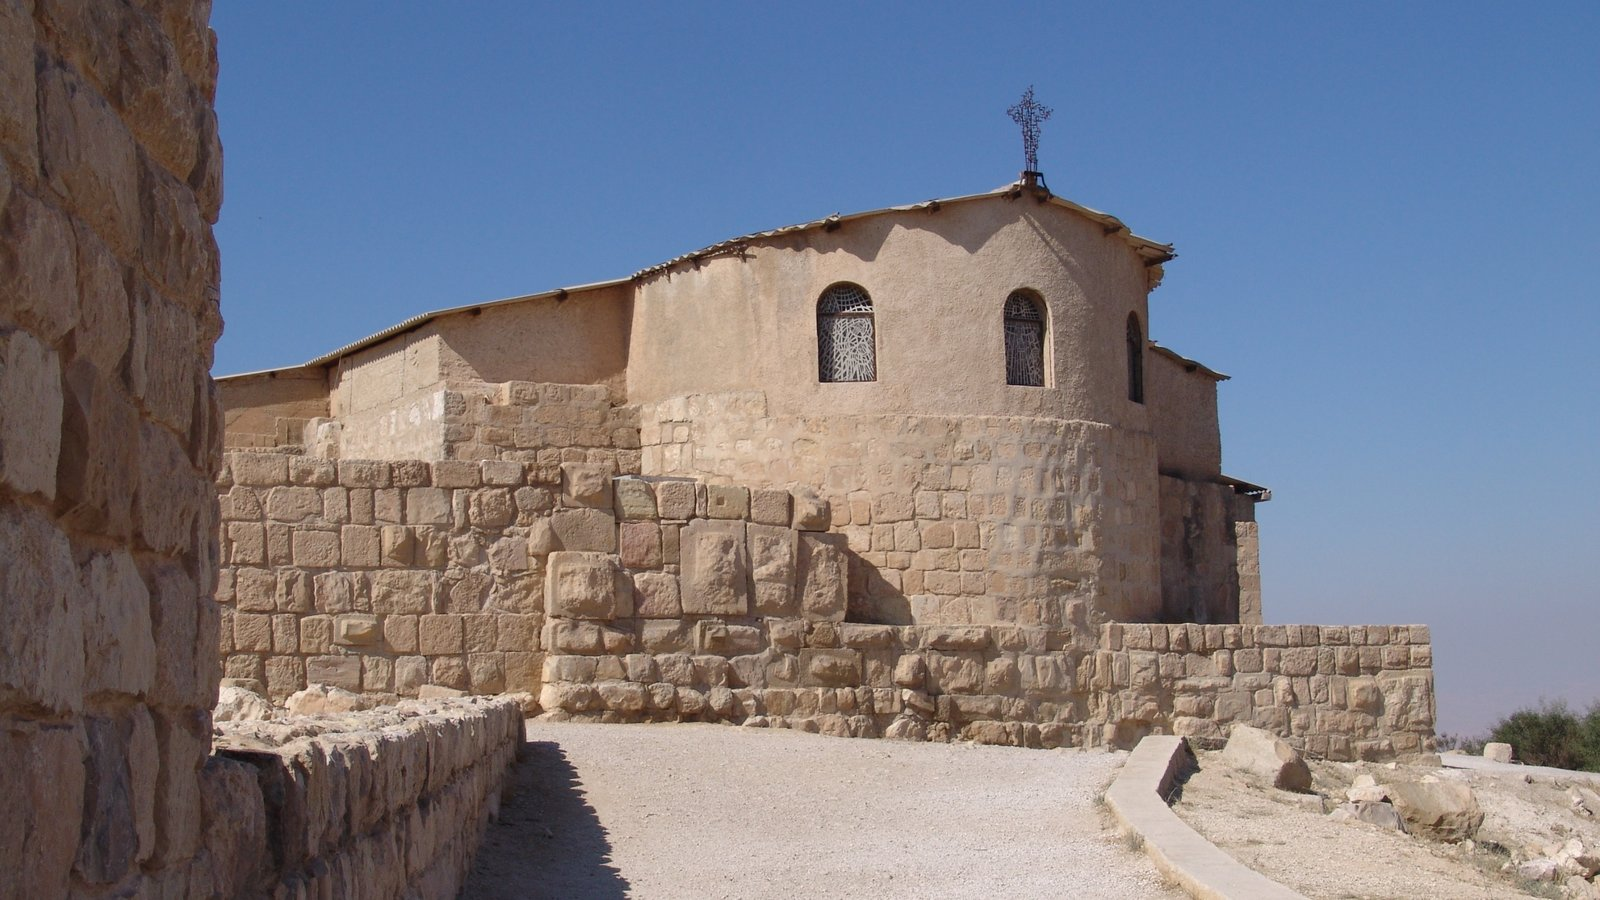 Mount Nebo which includes heritage architecture and a church or cathedral